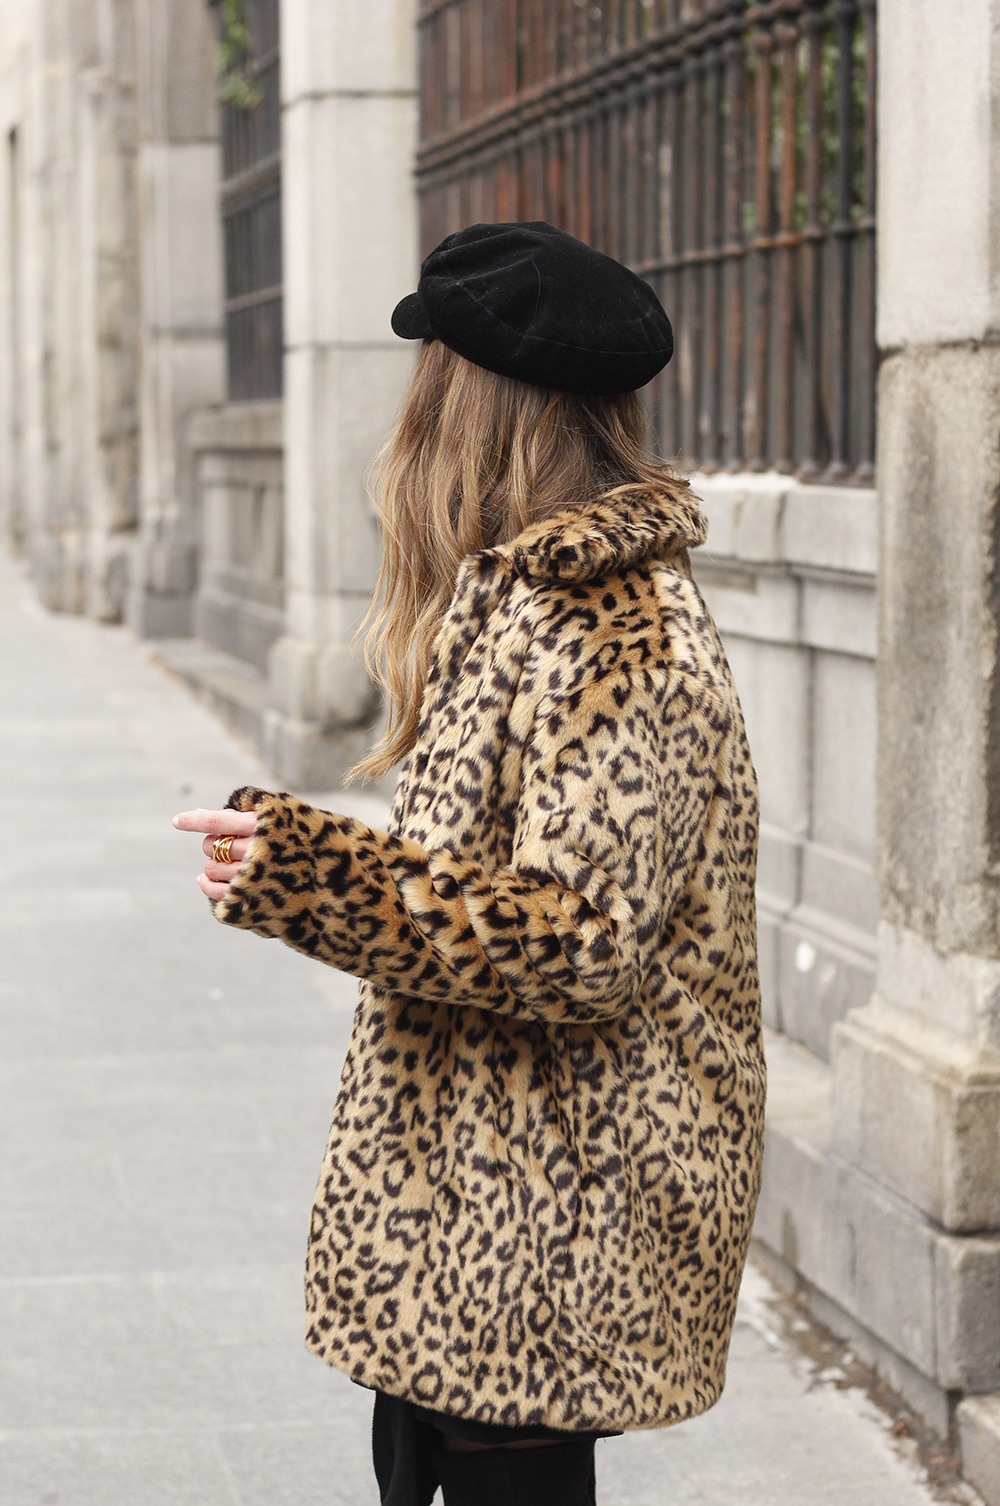 leopard coat black outfit over the knee boats givenchy black cap winter outfit11